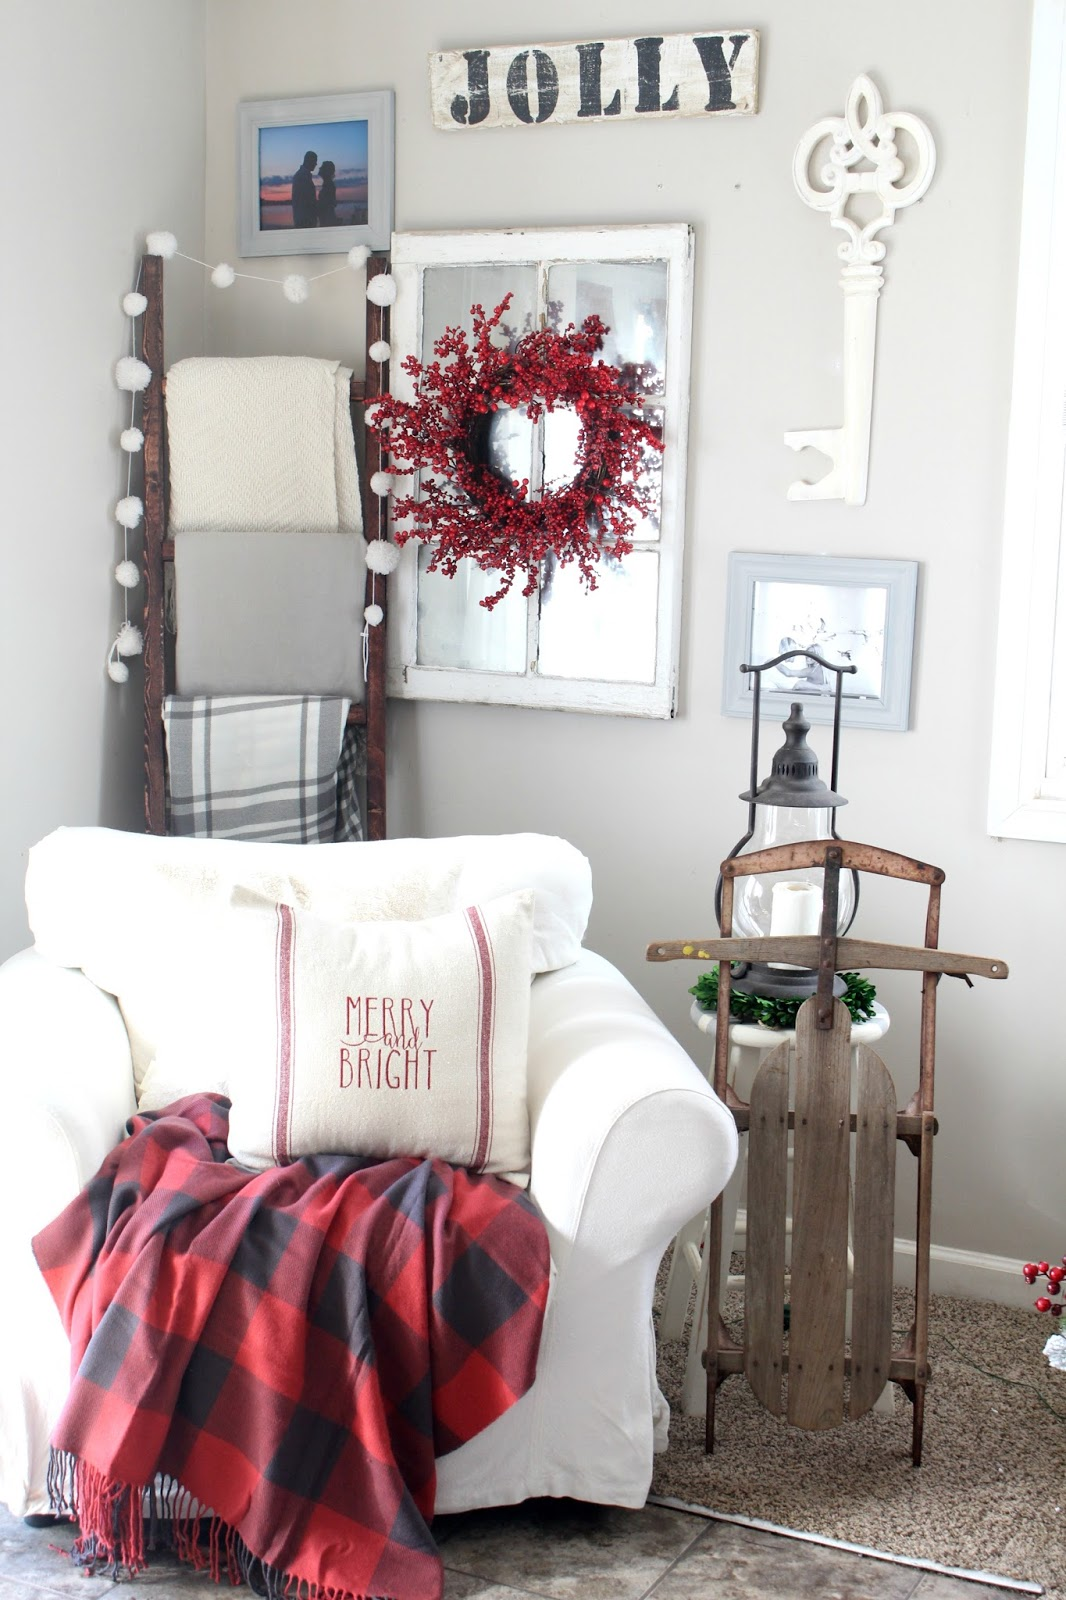 Six Quick Budget Friendly Ways To Decorate For Christmas - The Glam on christmas bedroom sets, christmas bedroom lighting, christmas bedroom fun, christmas design, christmas bedroom curtains, christmas layout of a bedroom, christmas outdoor decorations, christmas bedroom diy, christmas lights in bedroom, christmas beds, christmas bedroom accessories, christmas bedroom baby, christmas bedroom decor teen, christmas master bedrooms,